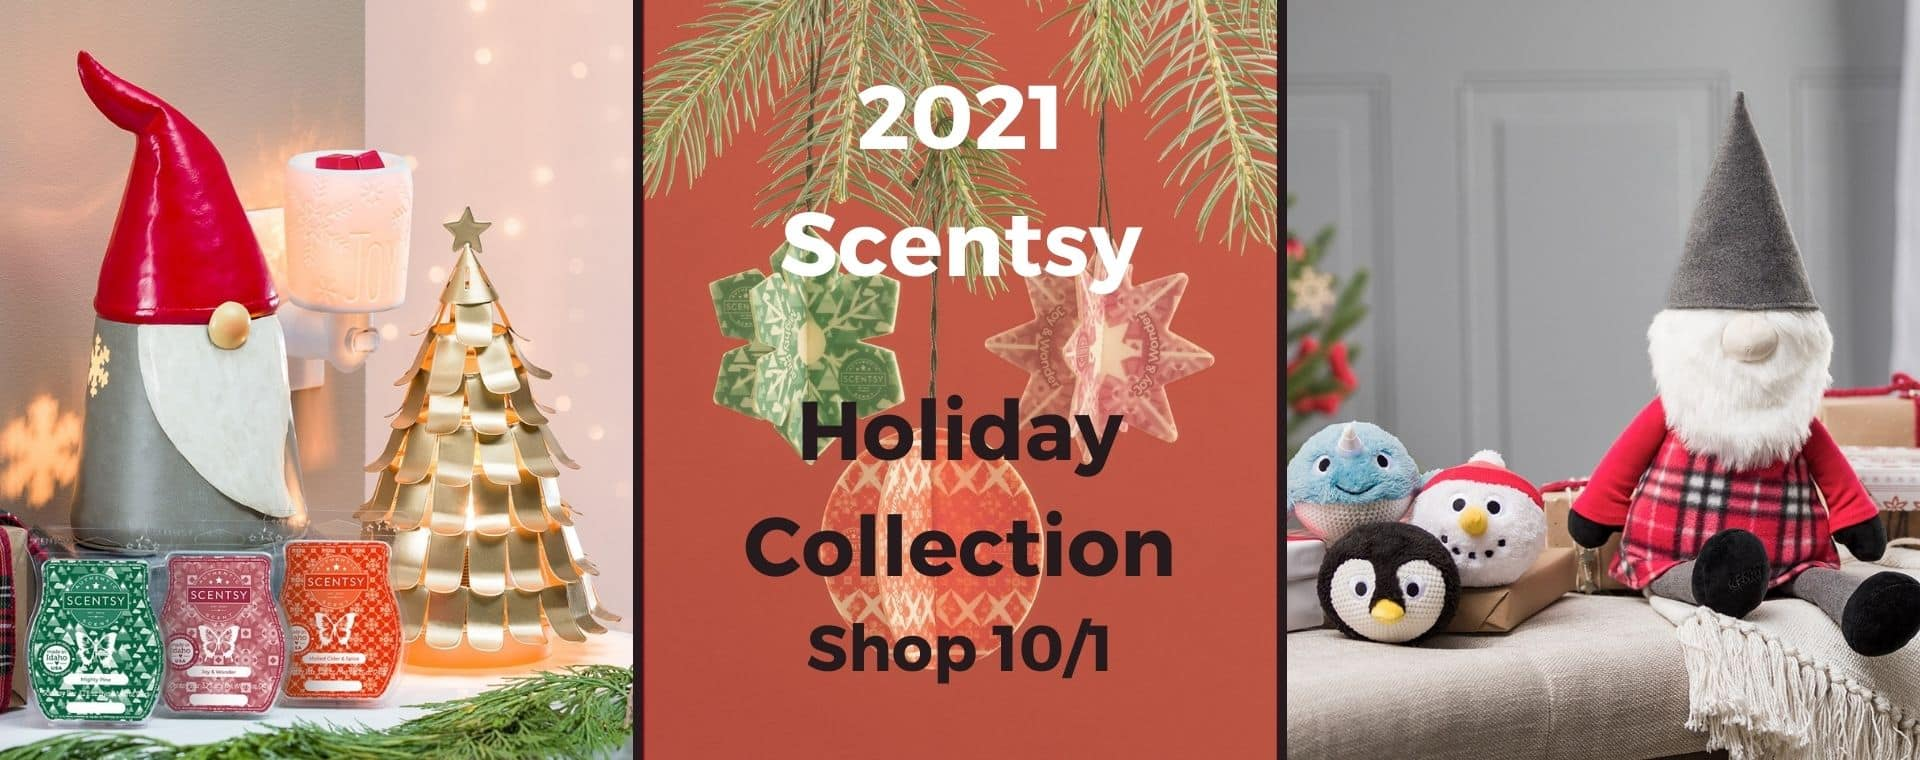 Scentsy Holiday Collection 2021